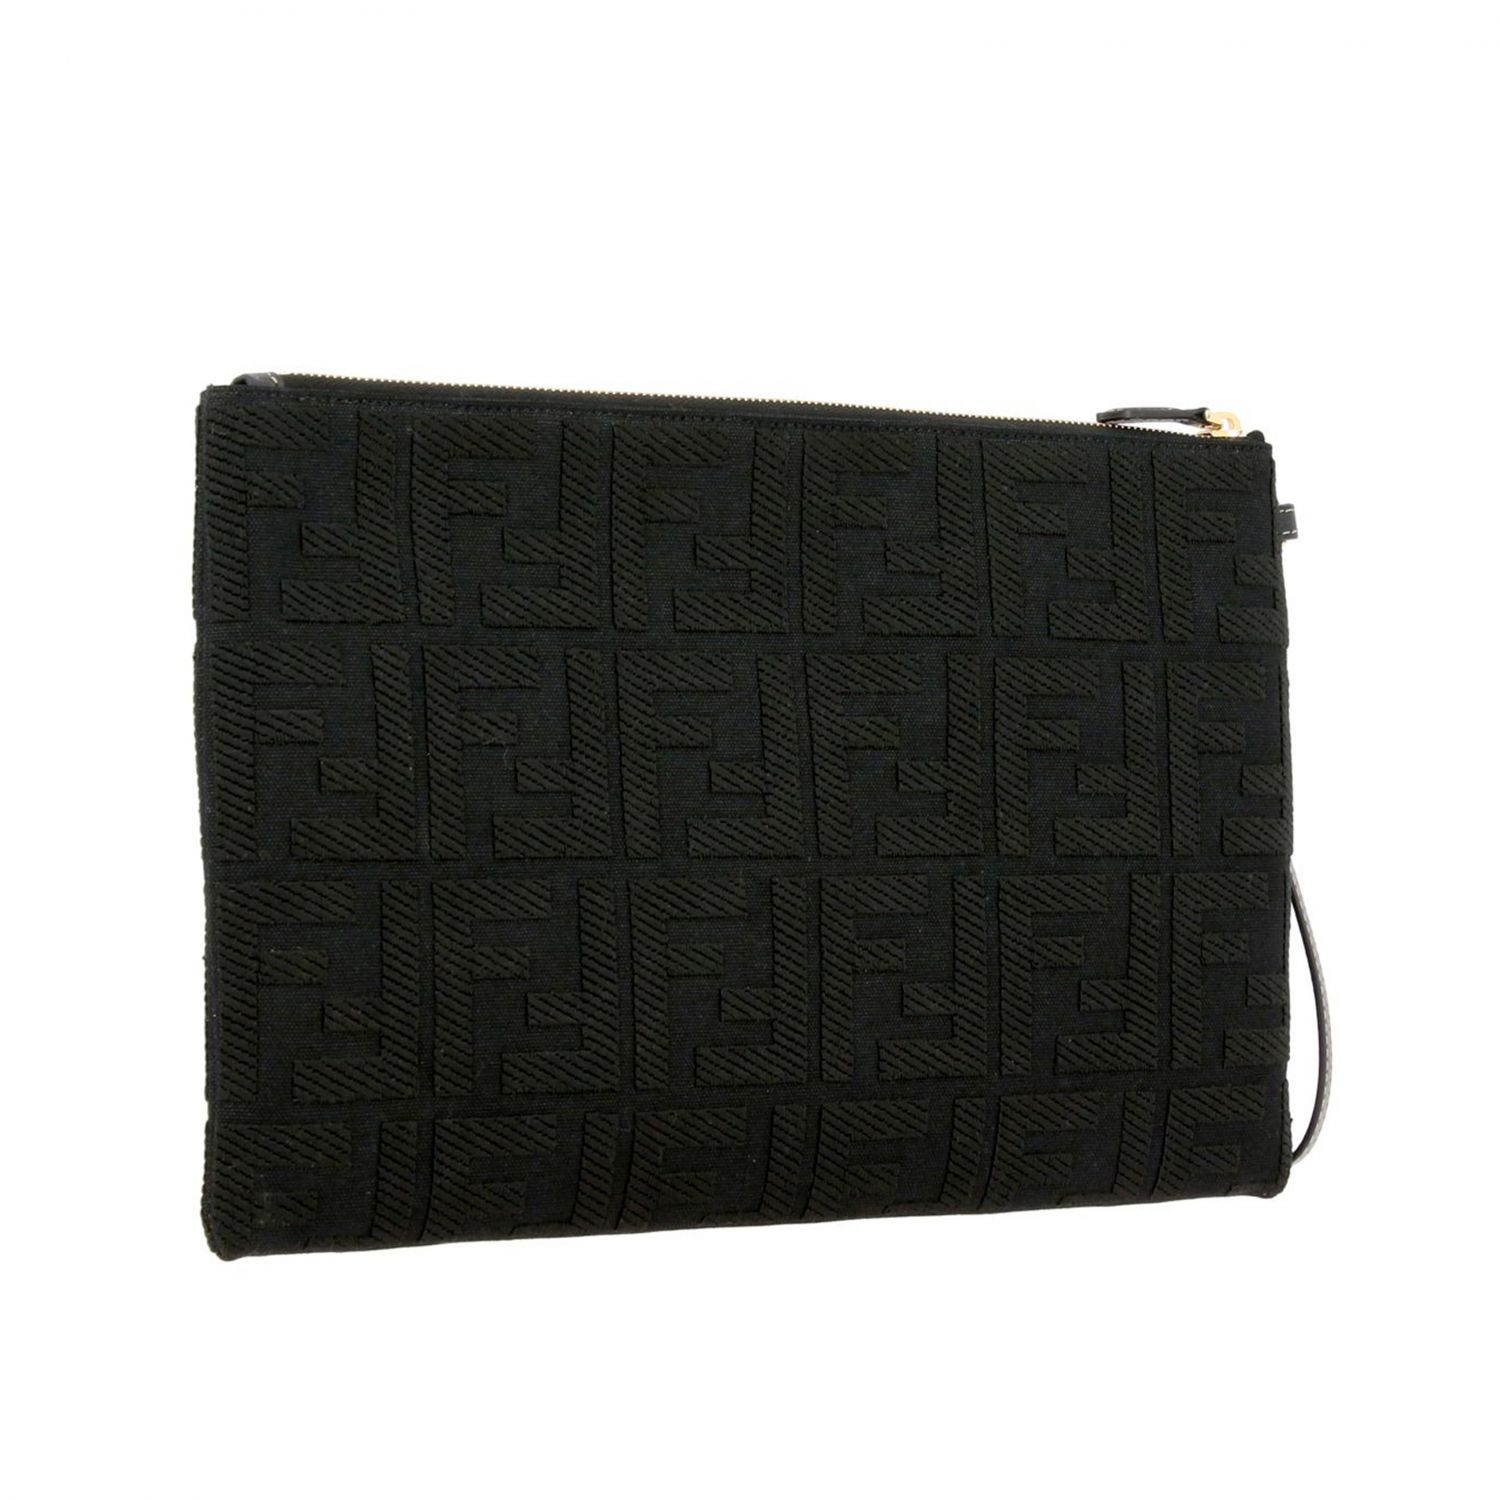 Fendi Clutch aus Canvas mit FF Monogramm